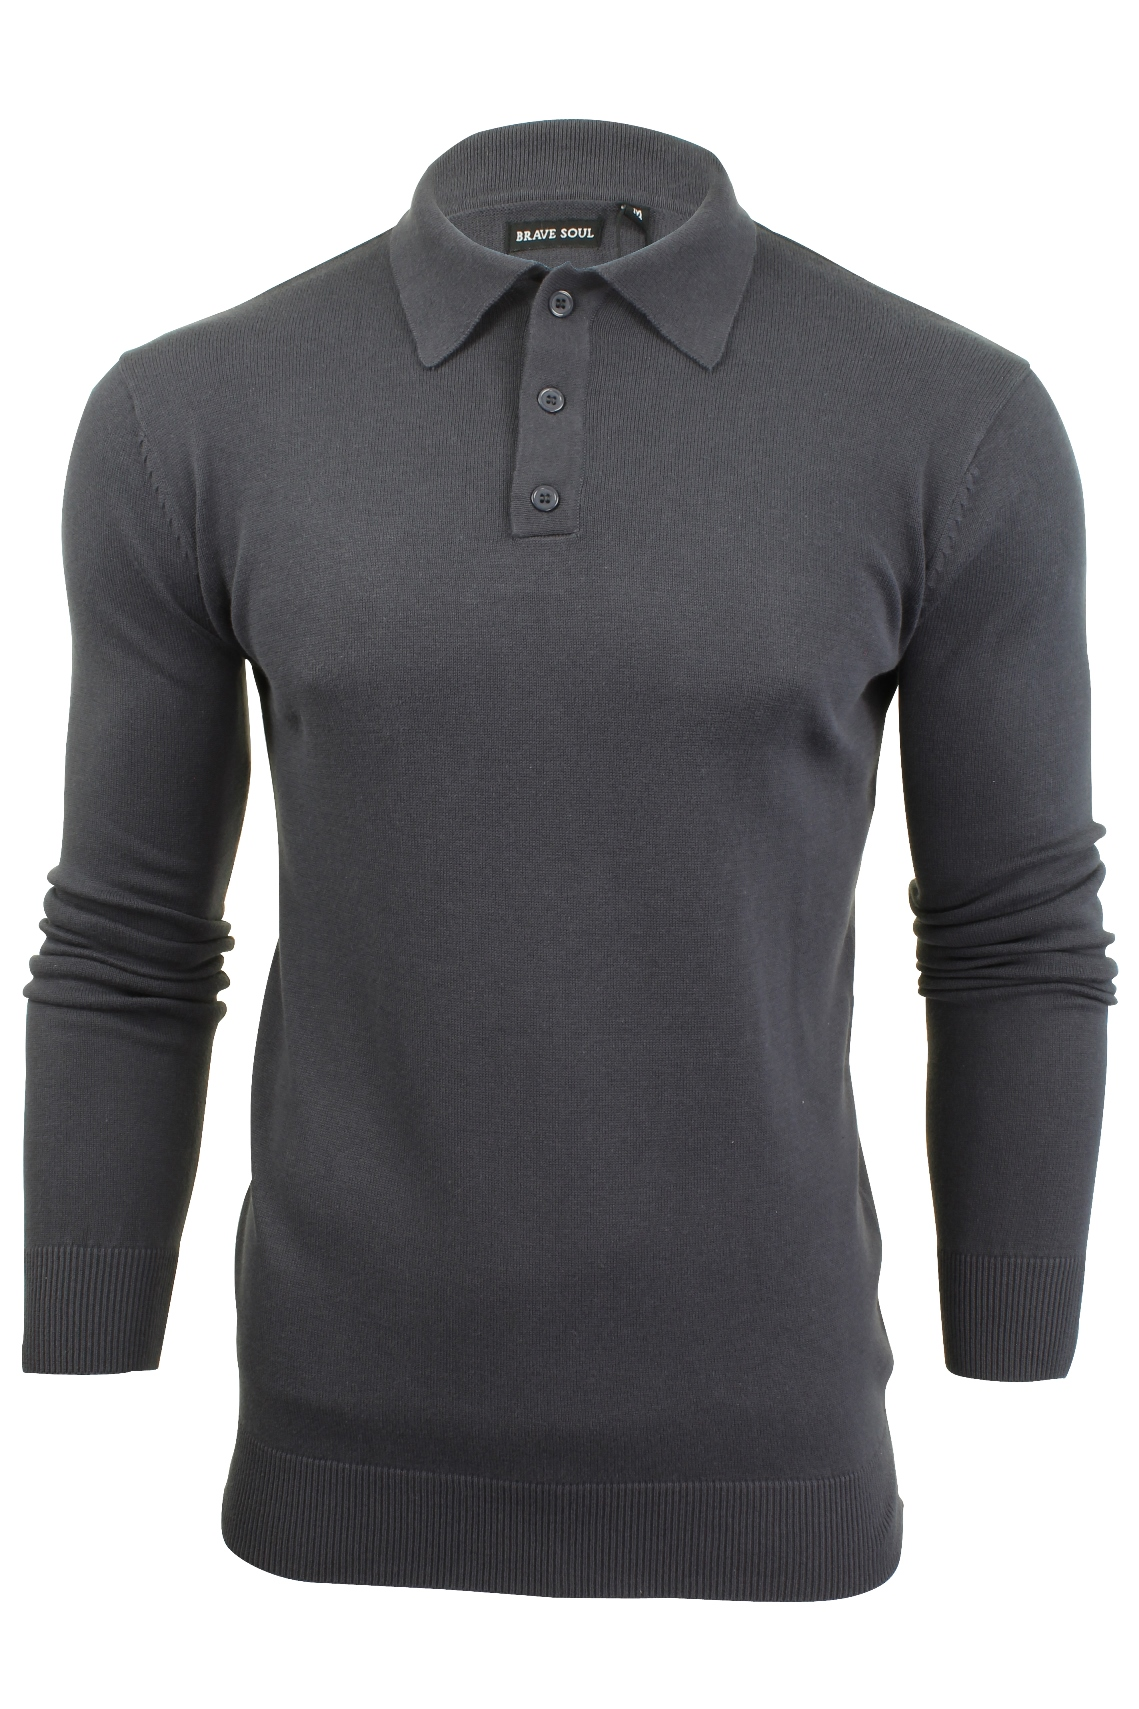 Mens knitted polo shirt by brave soul long sleeved ebay for Knitted polo shirt mens